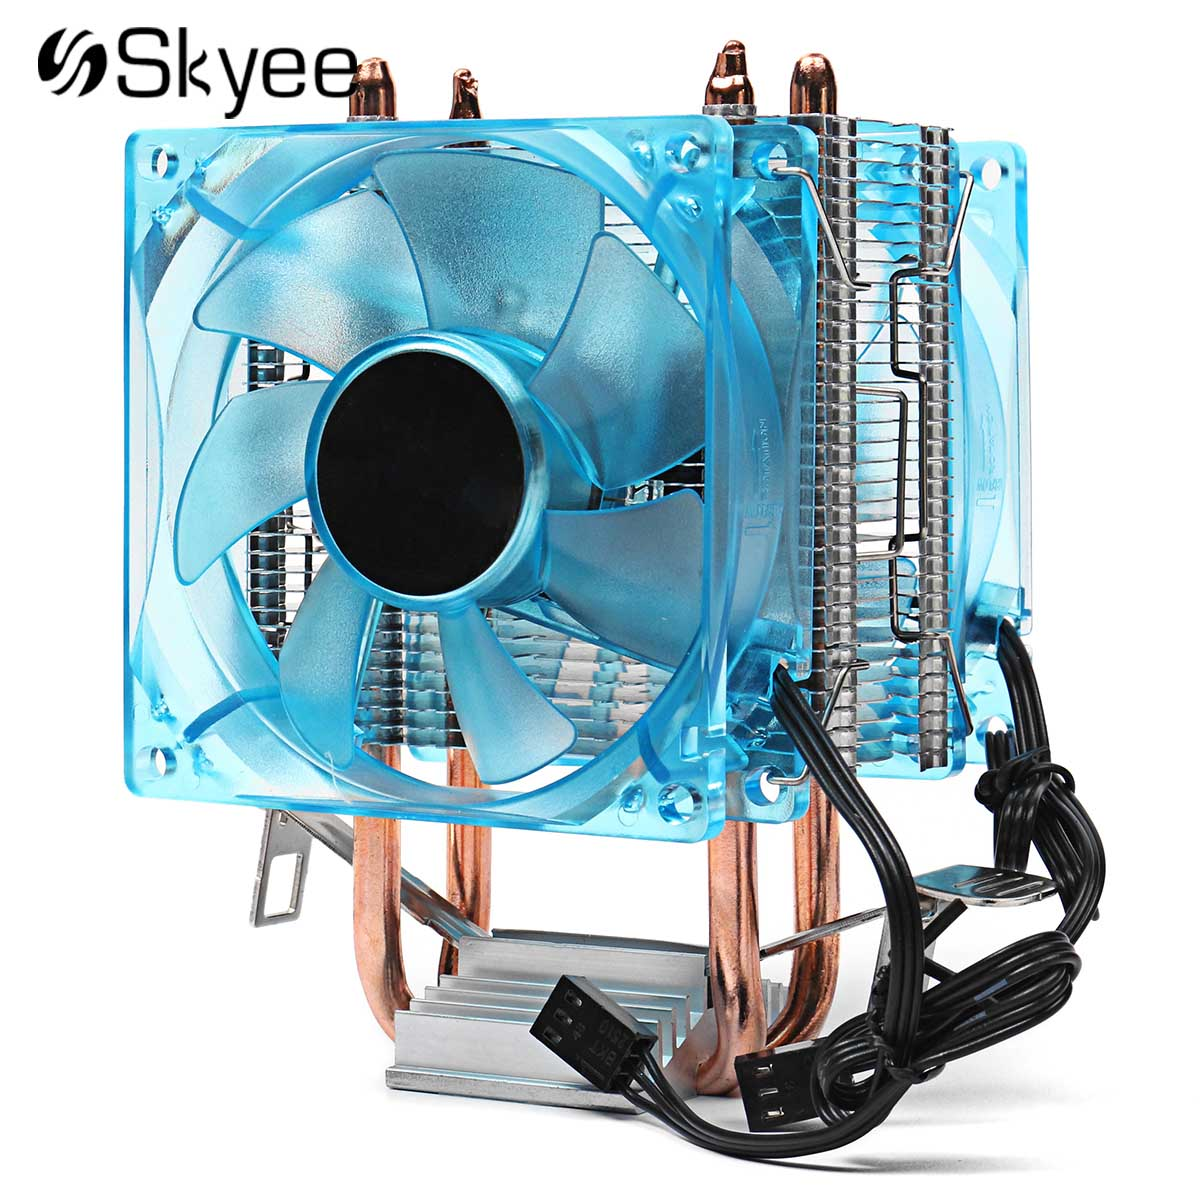 Aluminum CPU Cooling Fan Cooler Heatsink Fan 90mm Dual Copper Pipe LED CPU Cooling Fan for AMD FM1 AM2+ AM3+ Intel 775 1155 1156 pcooler s90f 10cm 4 pin pwm cooling fan 4 copper heat pipes led cpu cooler cooling fan heat sink for intel lga775 for amd am2